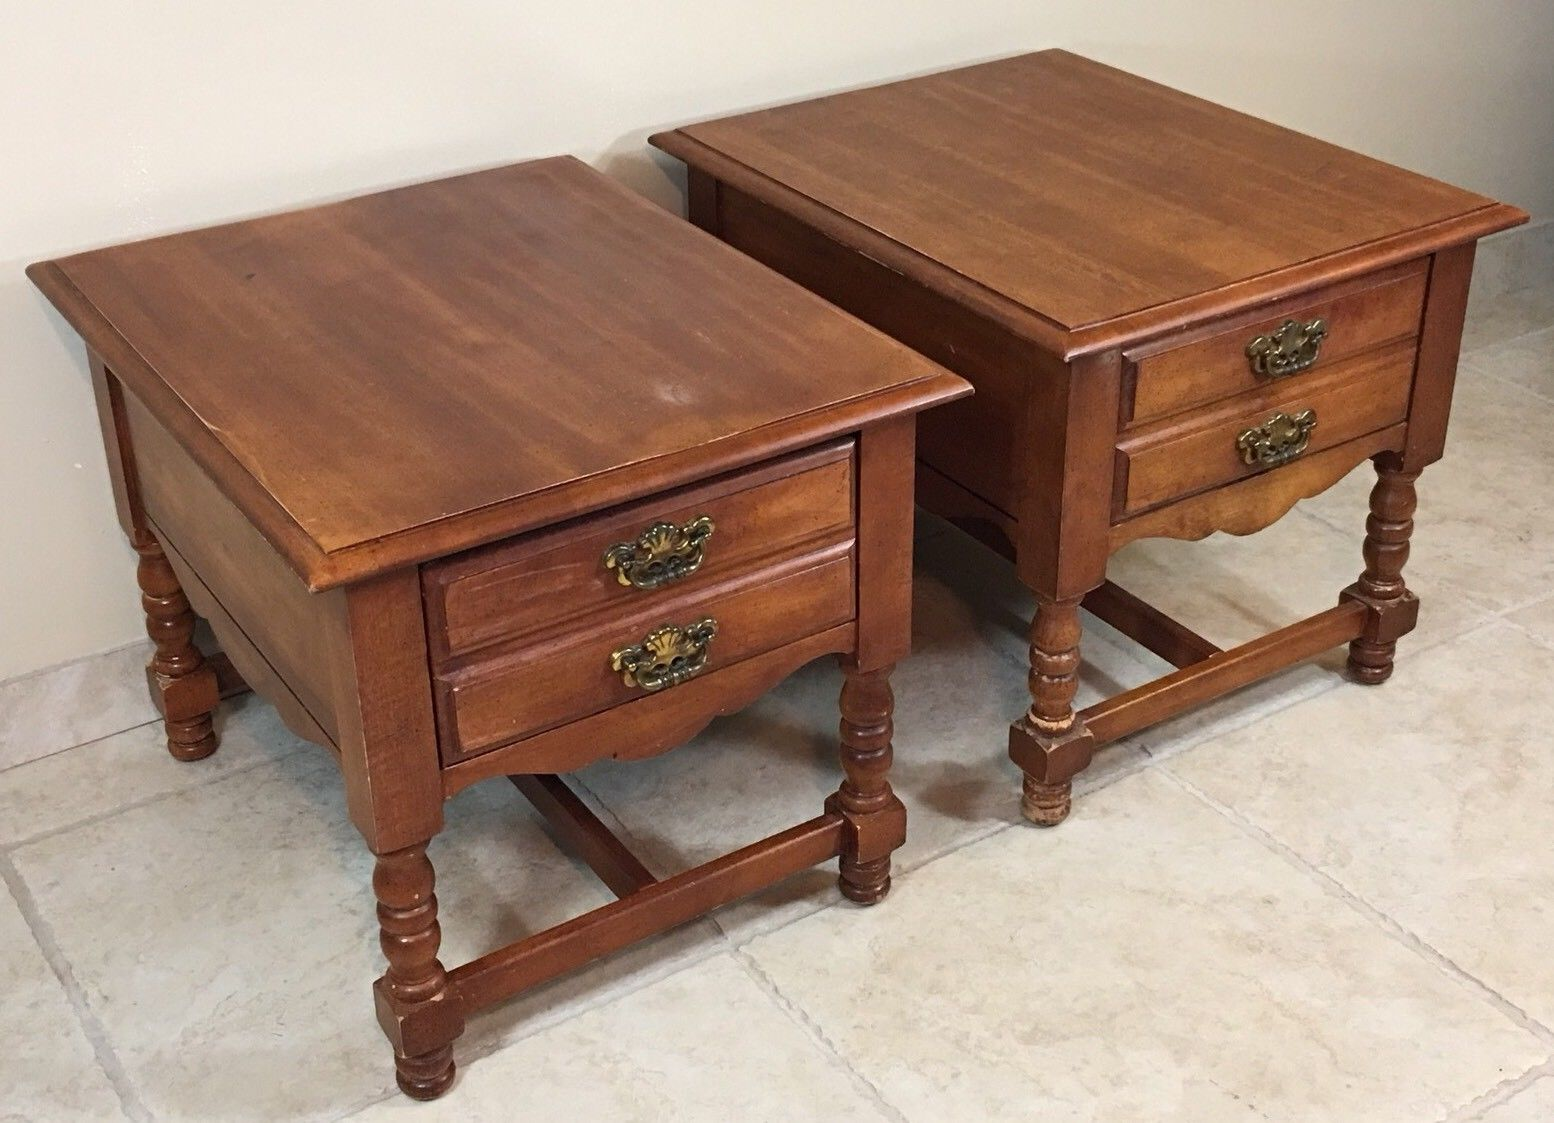 broyhill end table side nightstand pair set wooden dresser used tables norton secured powered verisign west elm coat rack ethan allen country furniture large dog crate antique